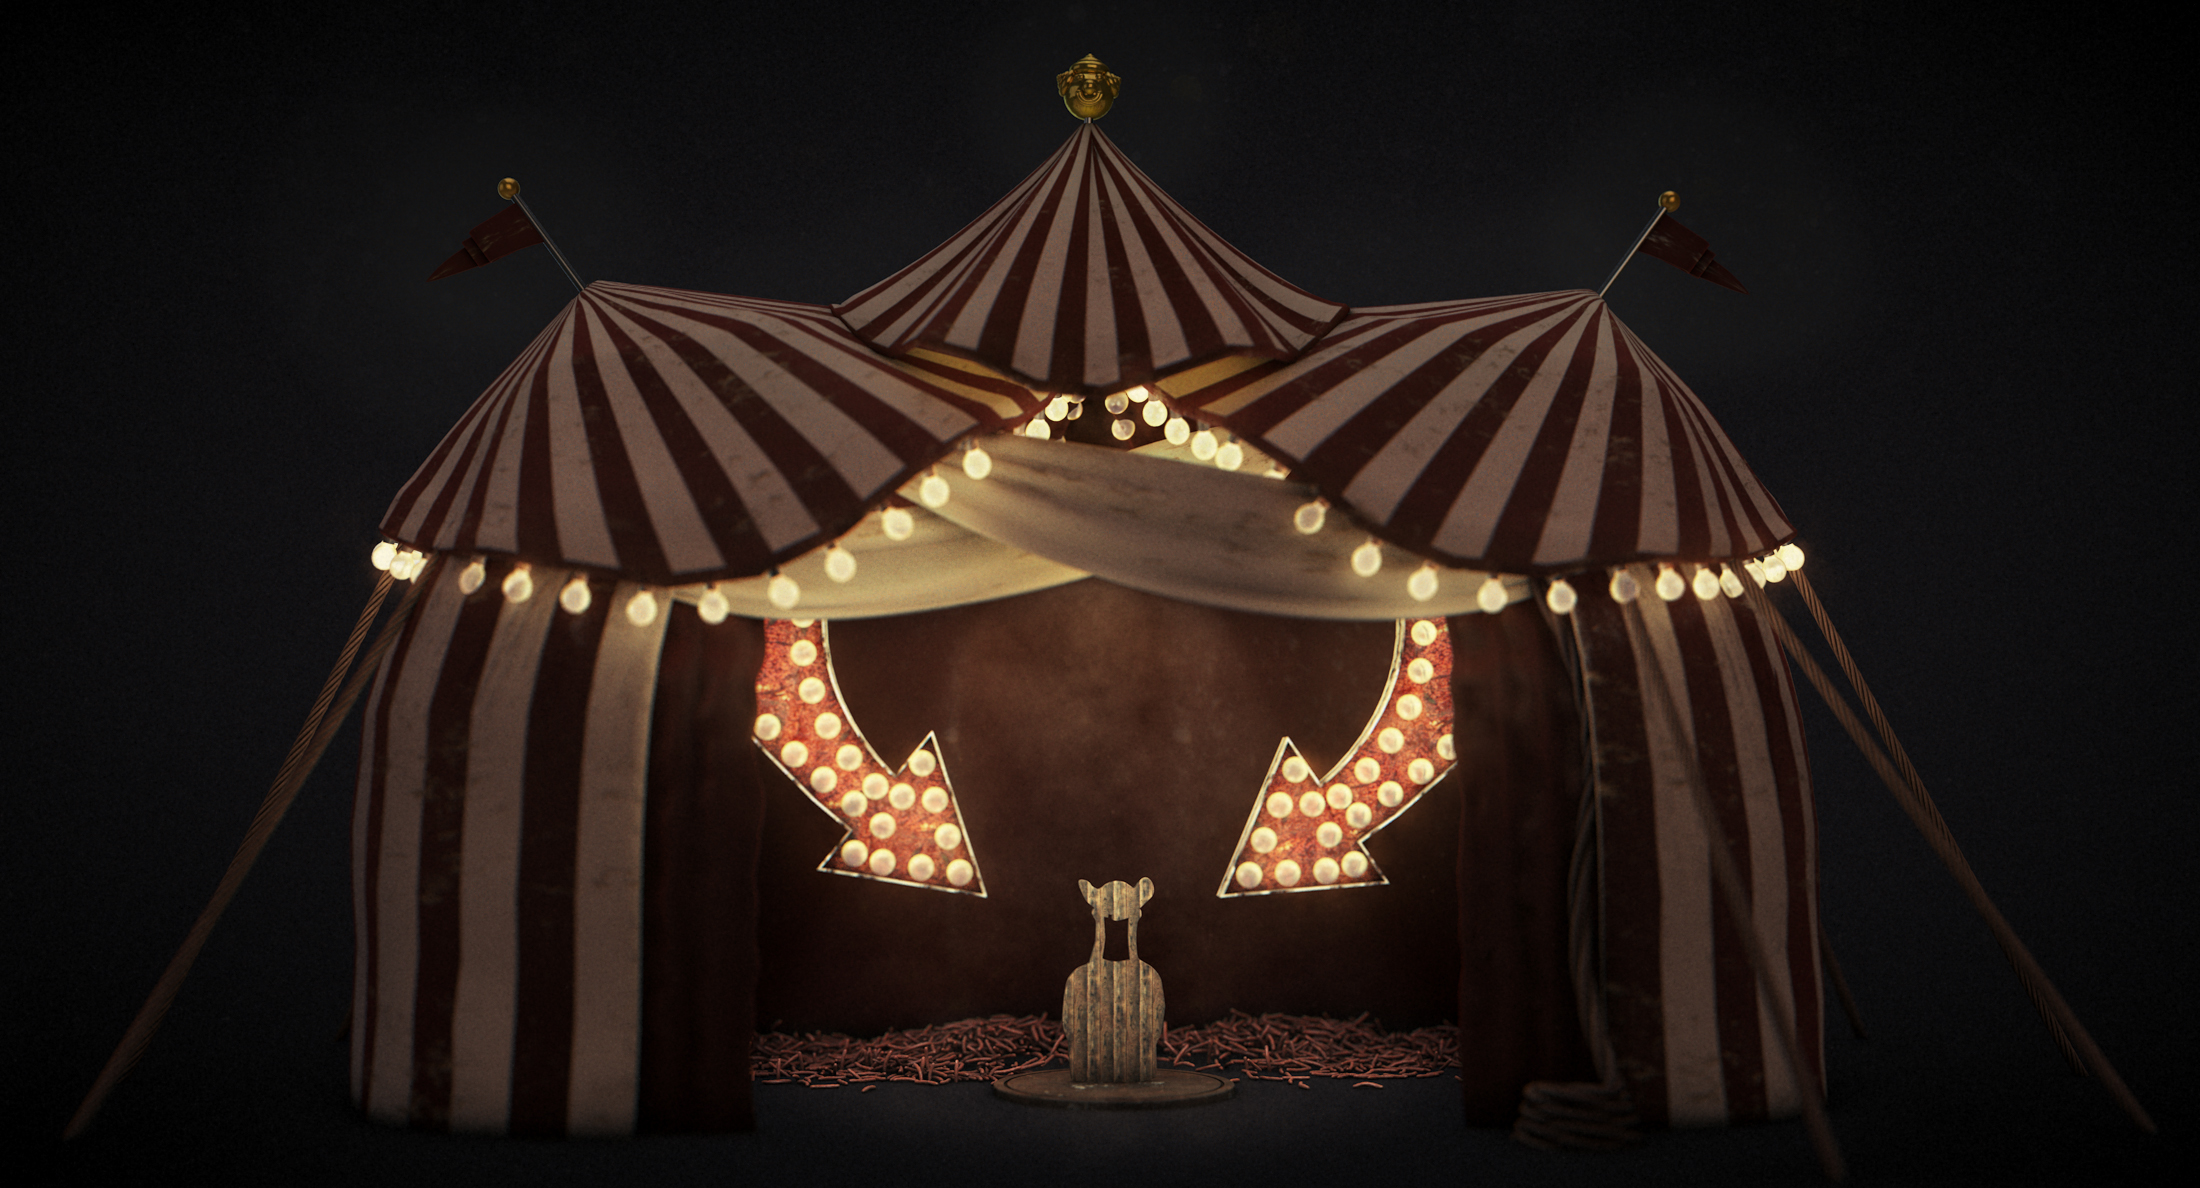 tent2 & Circus Tent: WIP | the process of events